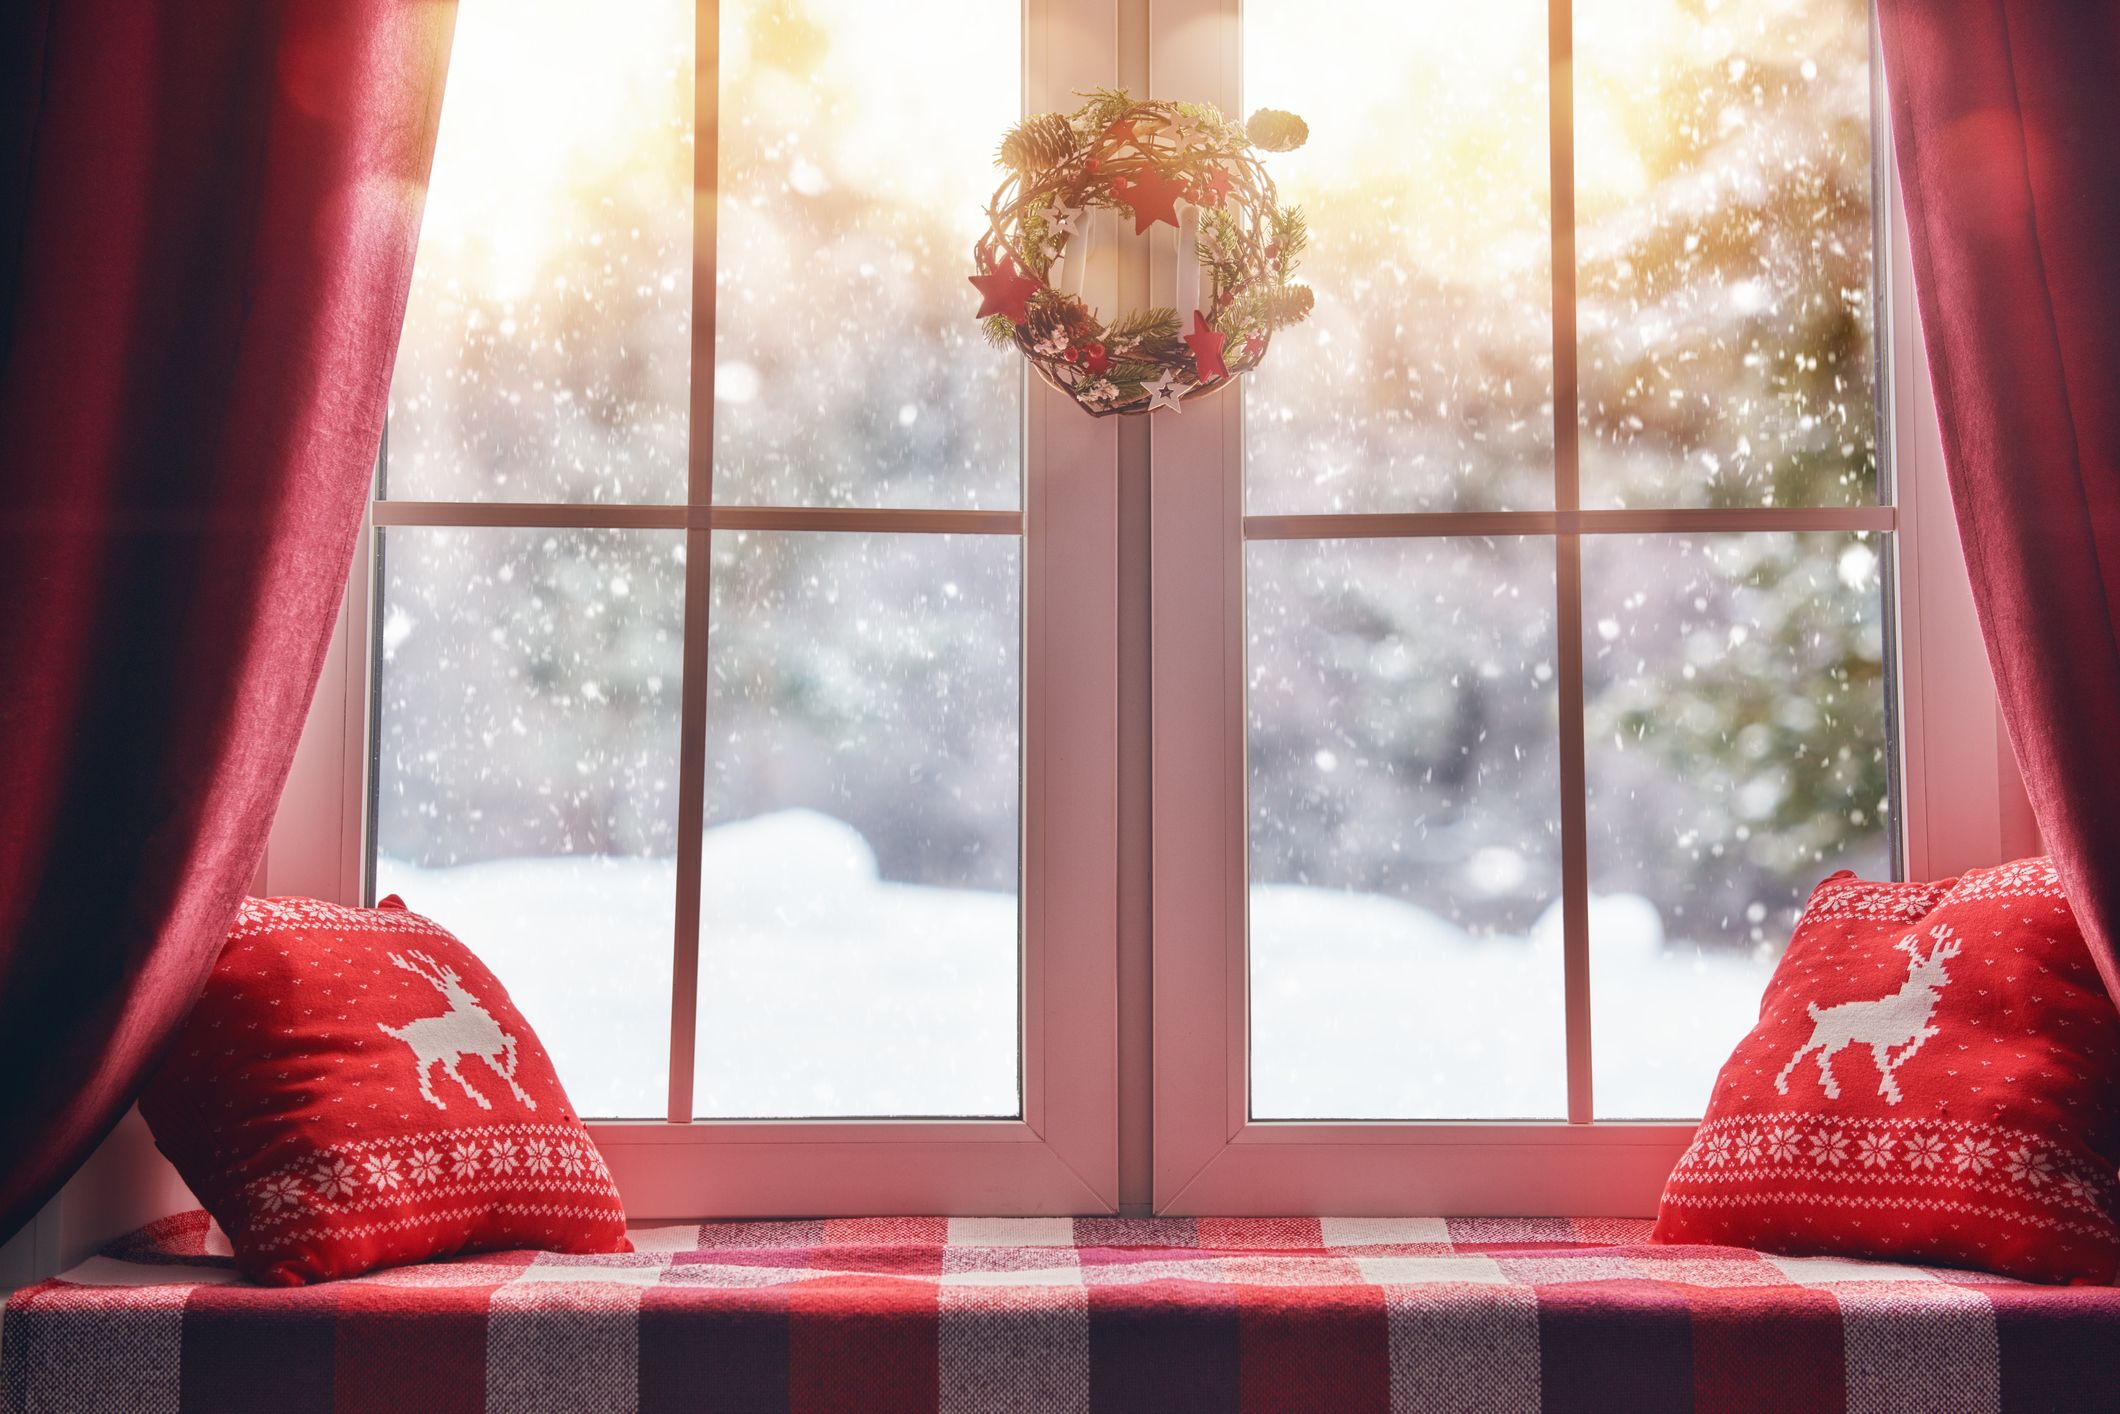 20 Christmas Window Decorations to Bring on the Holiday Cheer